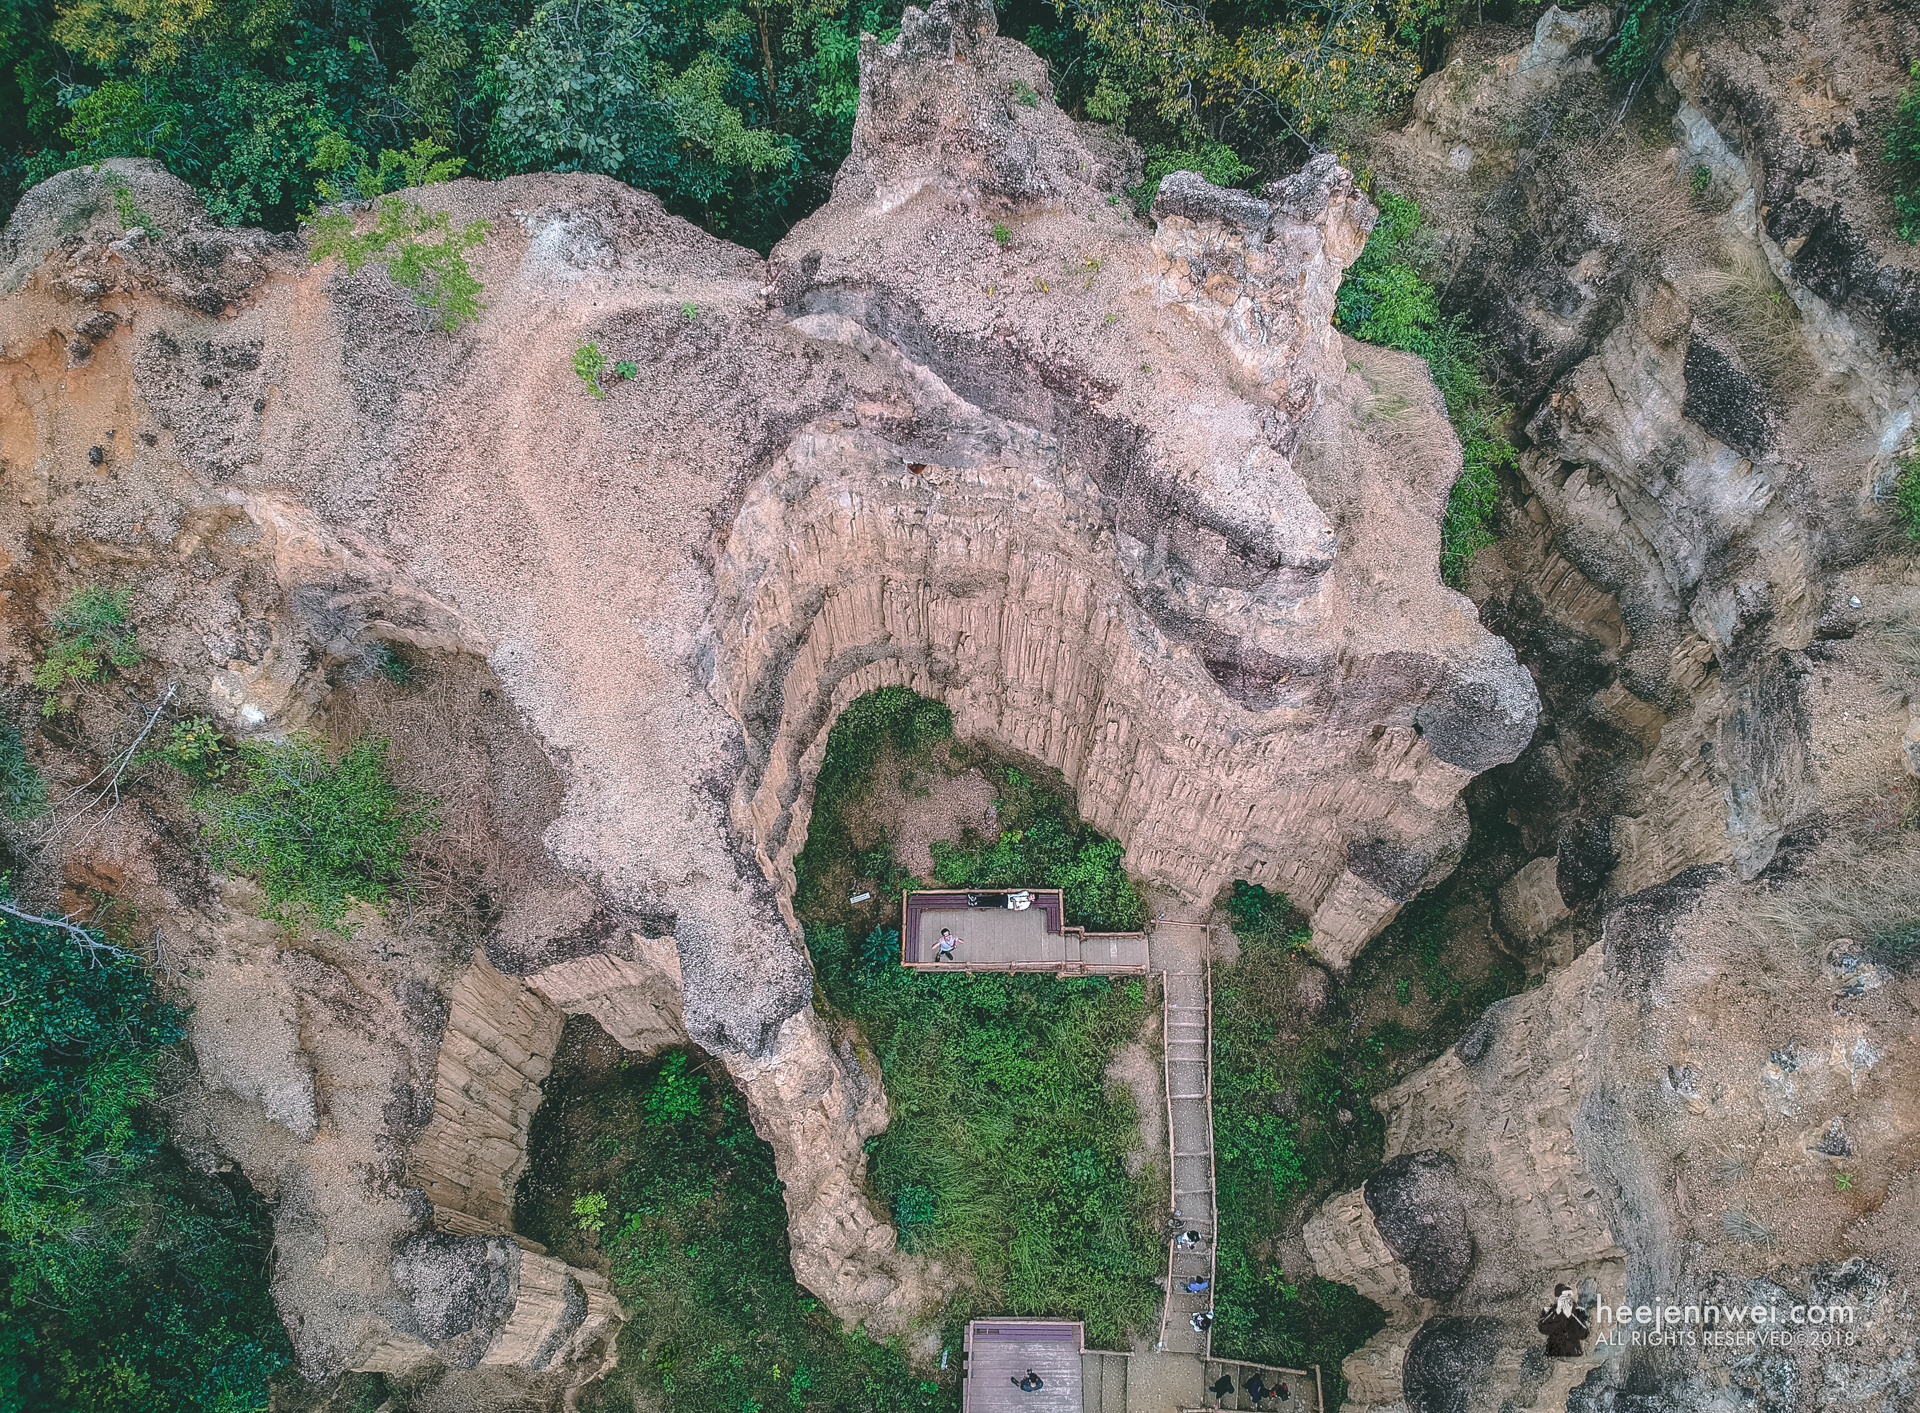 Pha Chor canyon from aerial view, you'll be able to see how the river crafted out these impressive pillars.